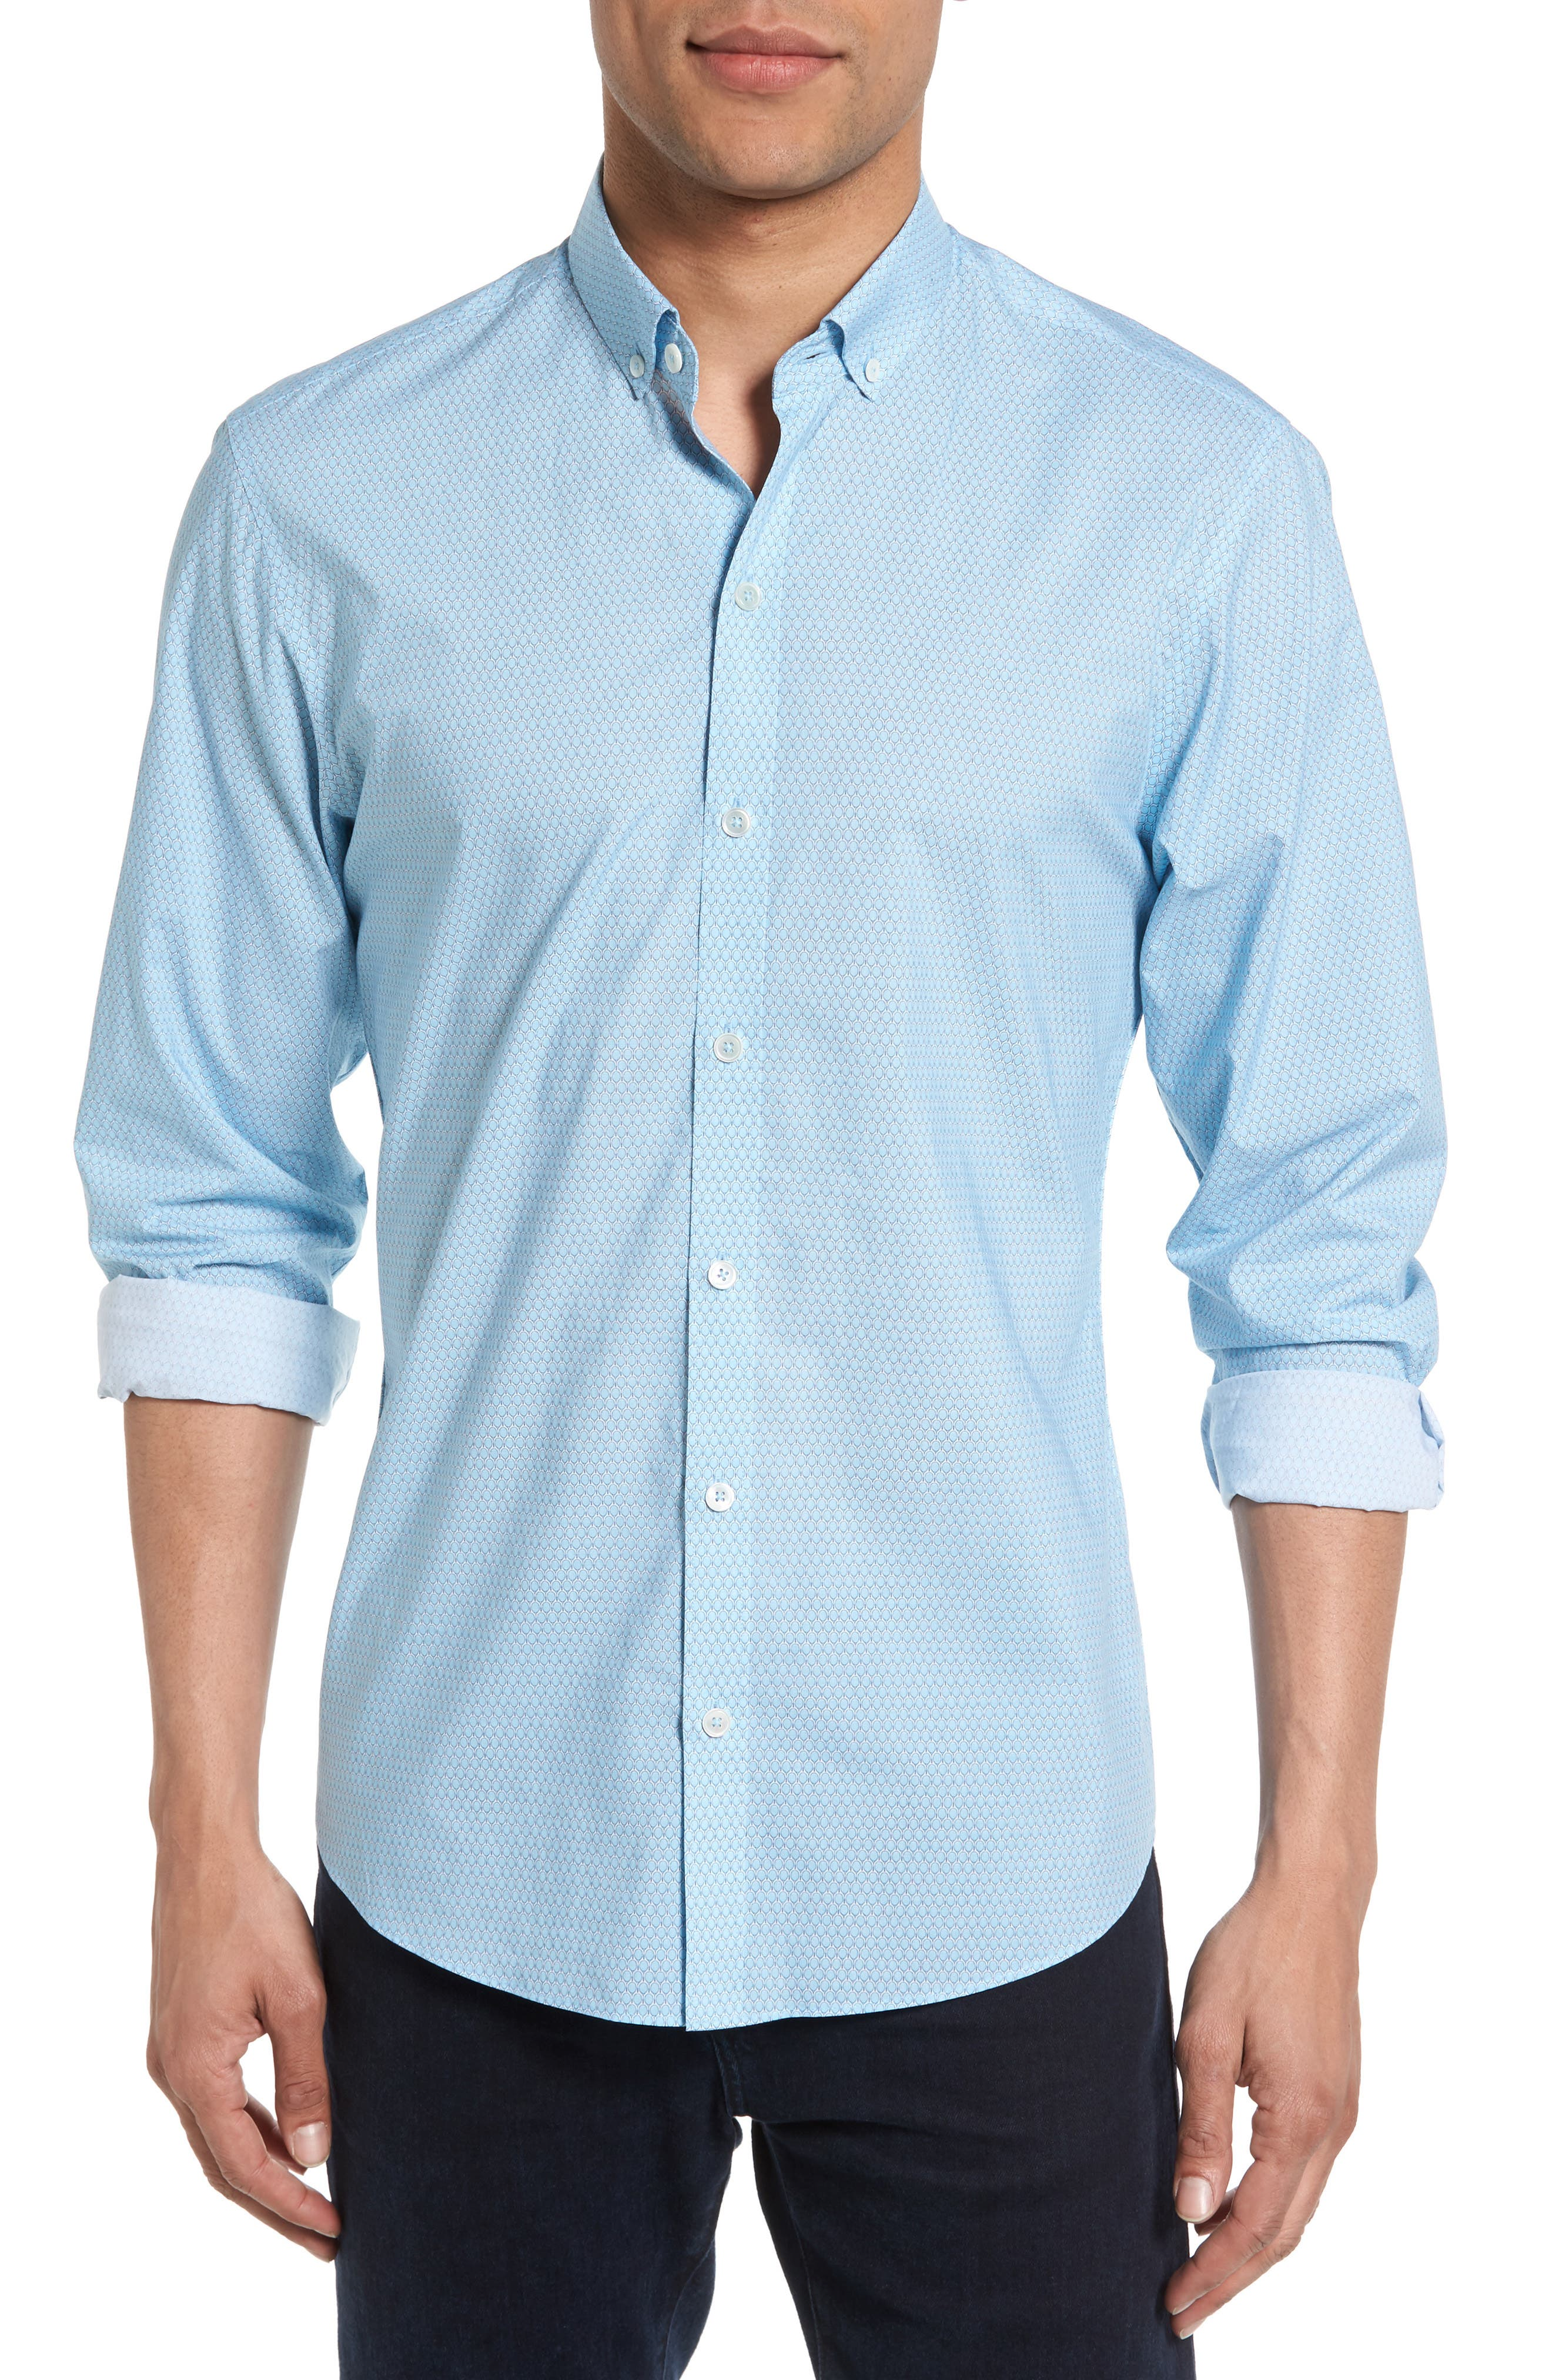 Alternate Image 1 Selected - Zachary Prell Dakotah Trim Fit Print Sport Shirt